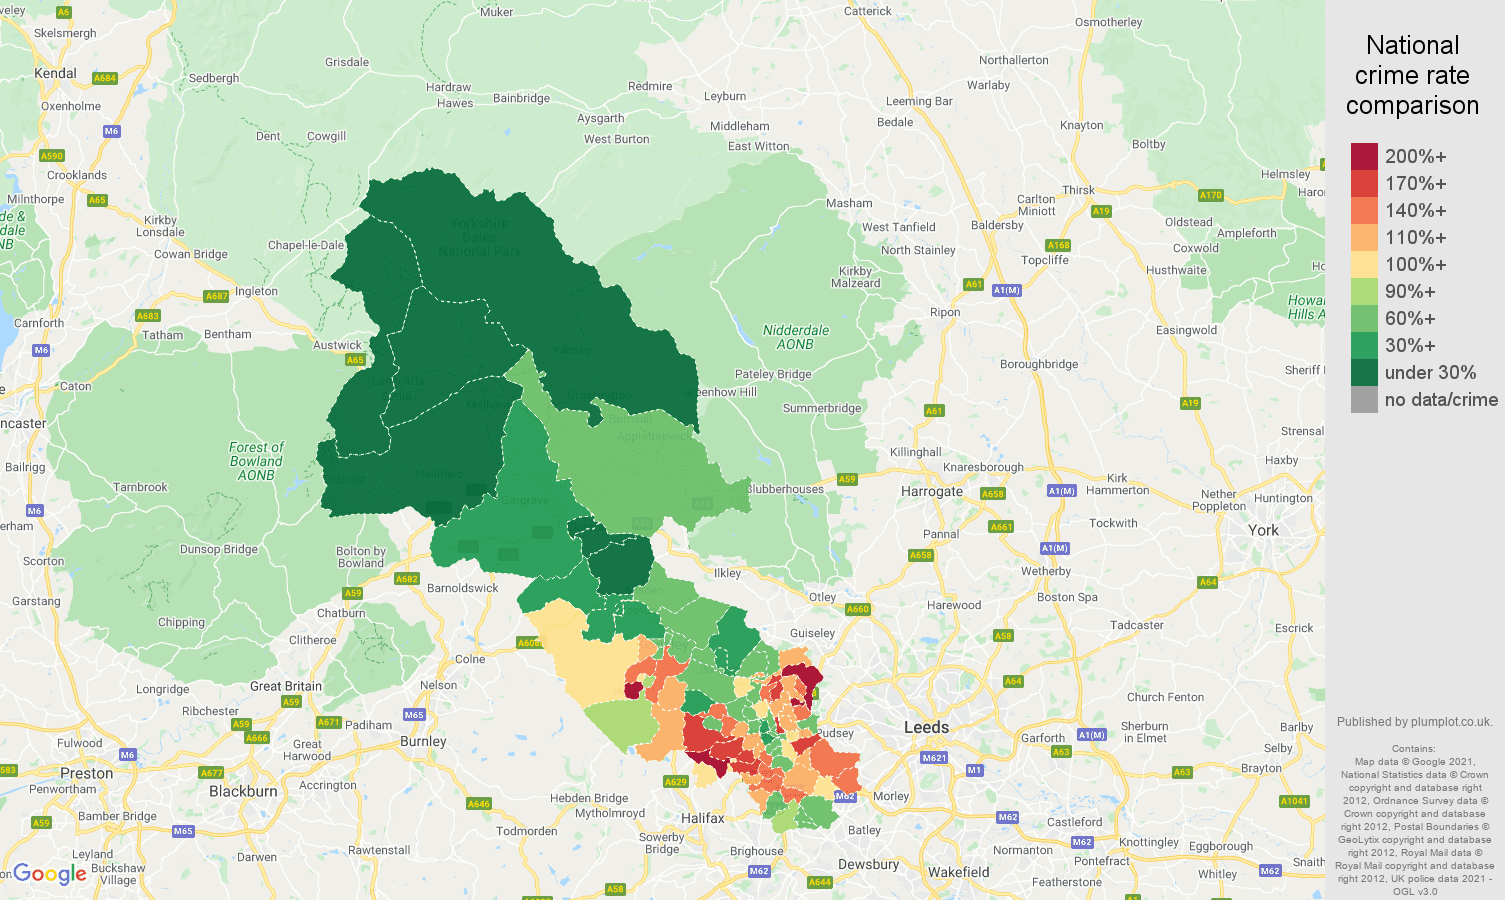 Bradford vehicle crime rate comparison map